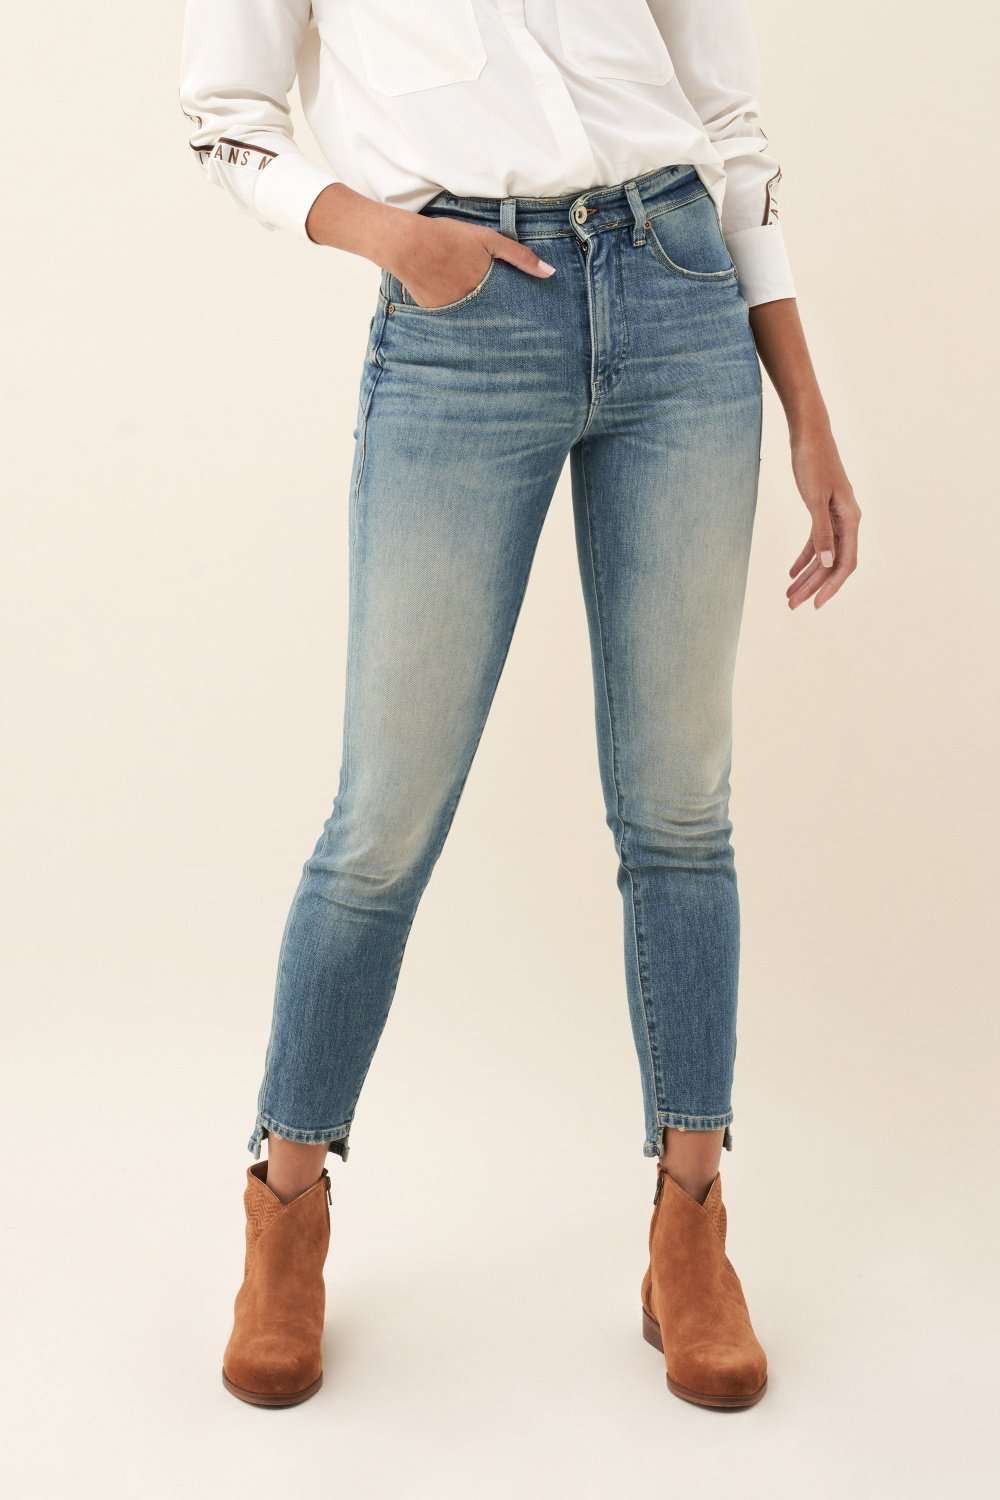 Push In Secret Glamour capri light jeans - Salsa